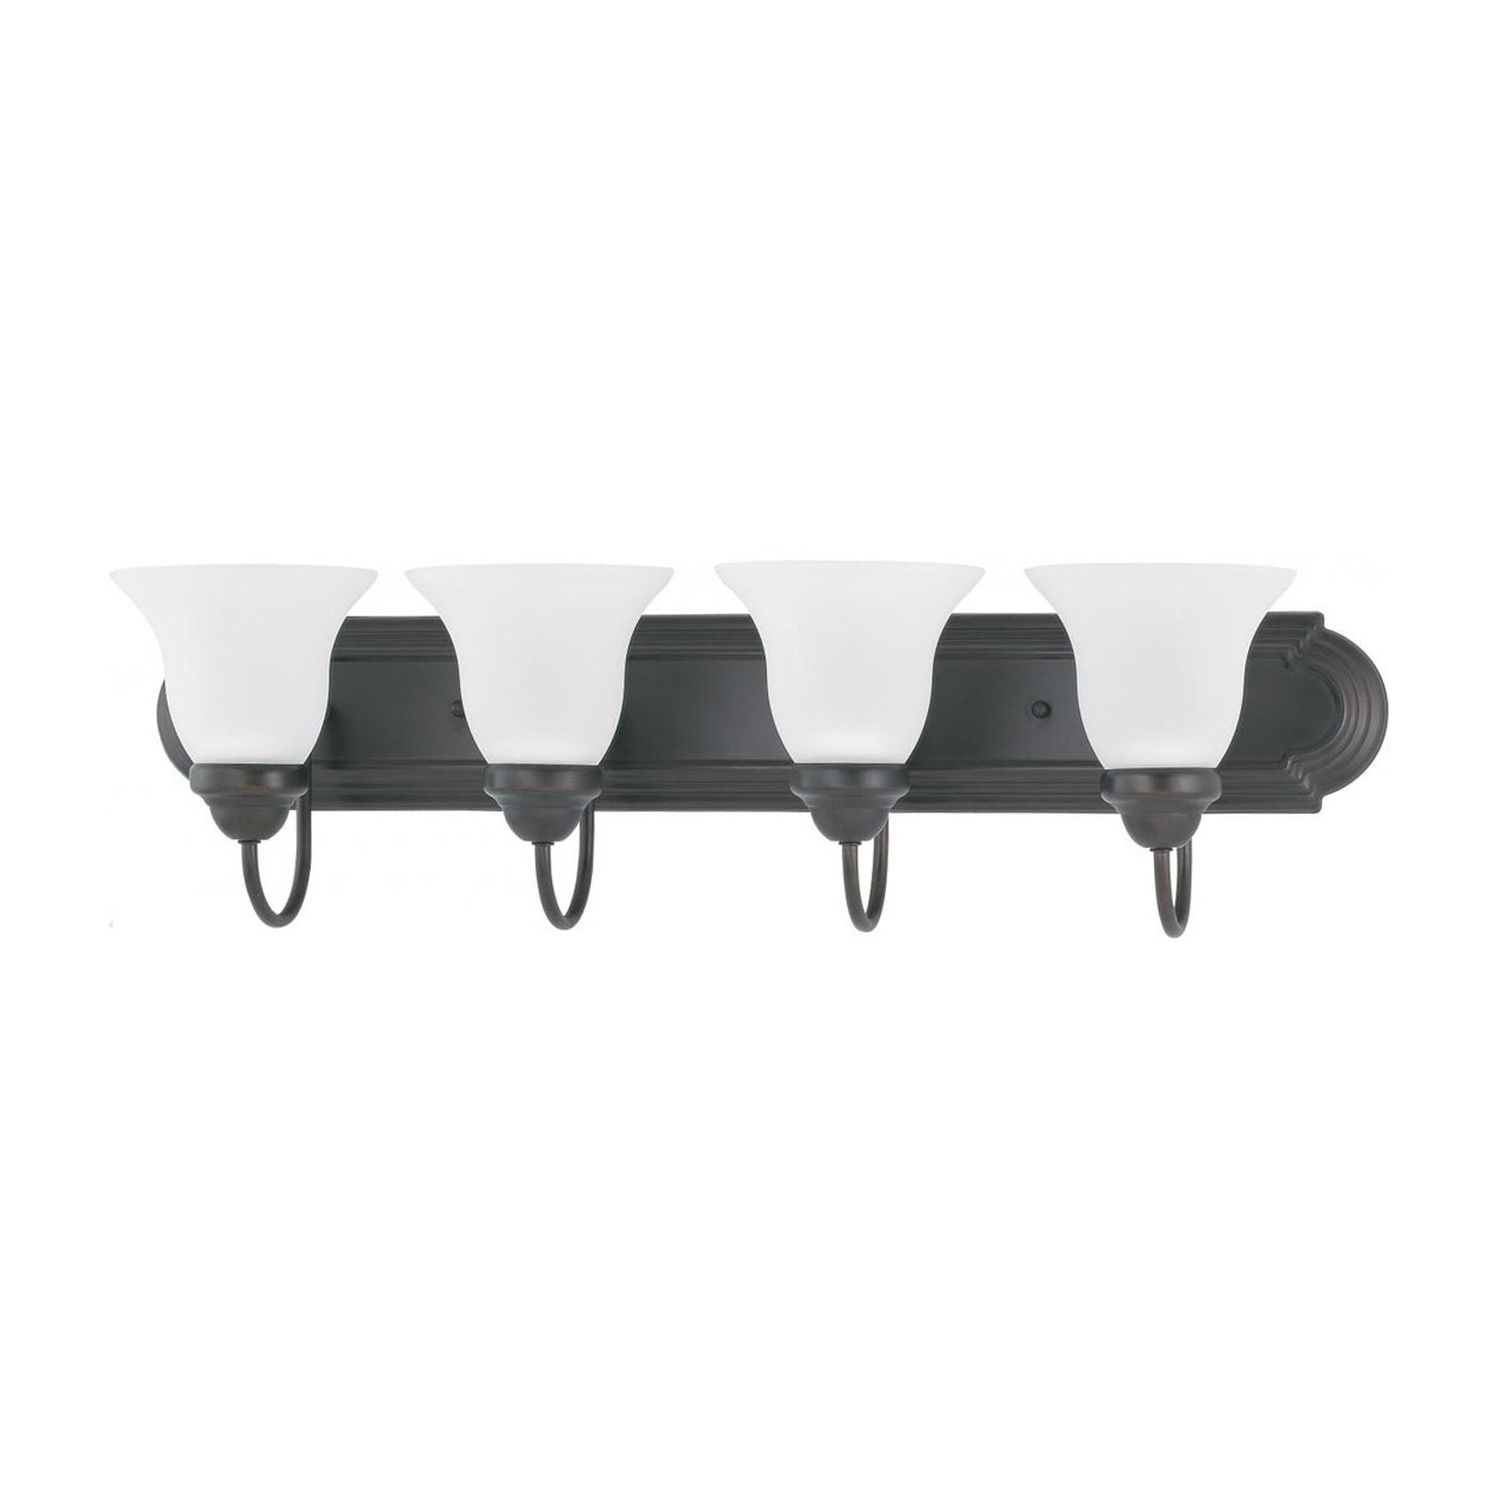 Photo of Satco 4 Globe Bathroom Vanity Light Bar Bath Fixture Frosted Glass Bulbs Included, Bronze